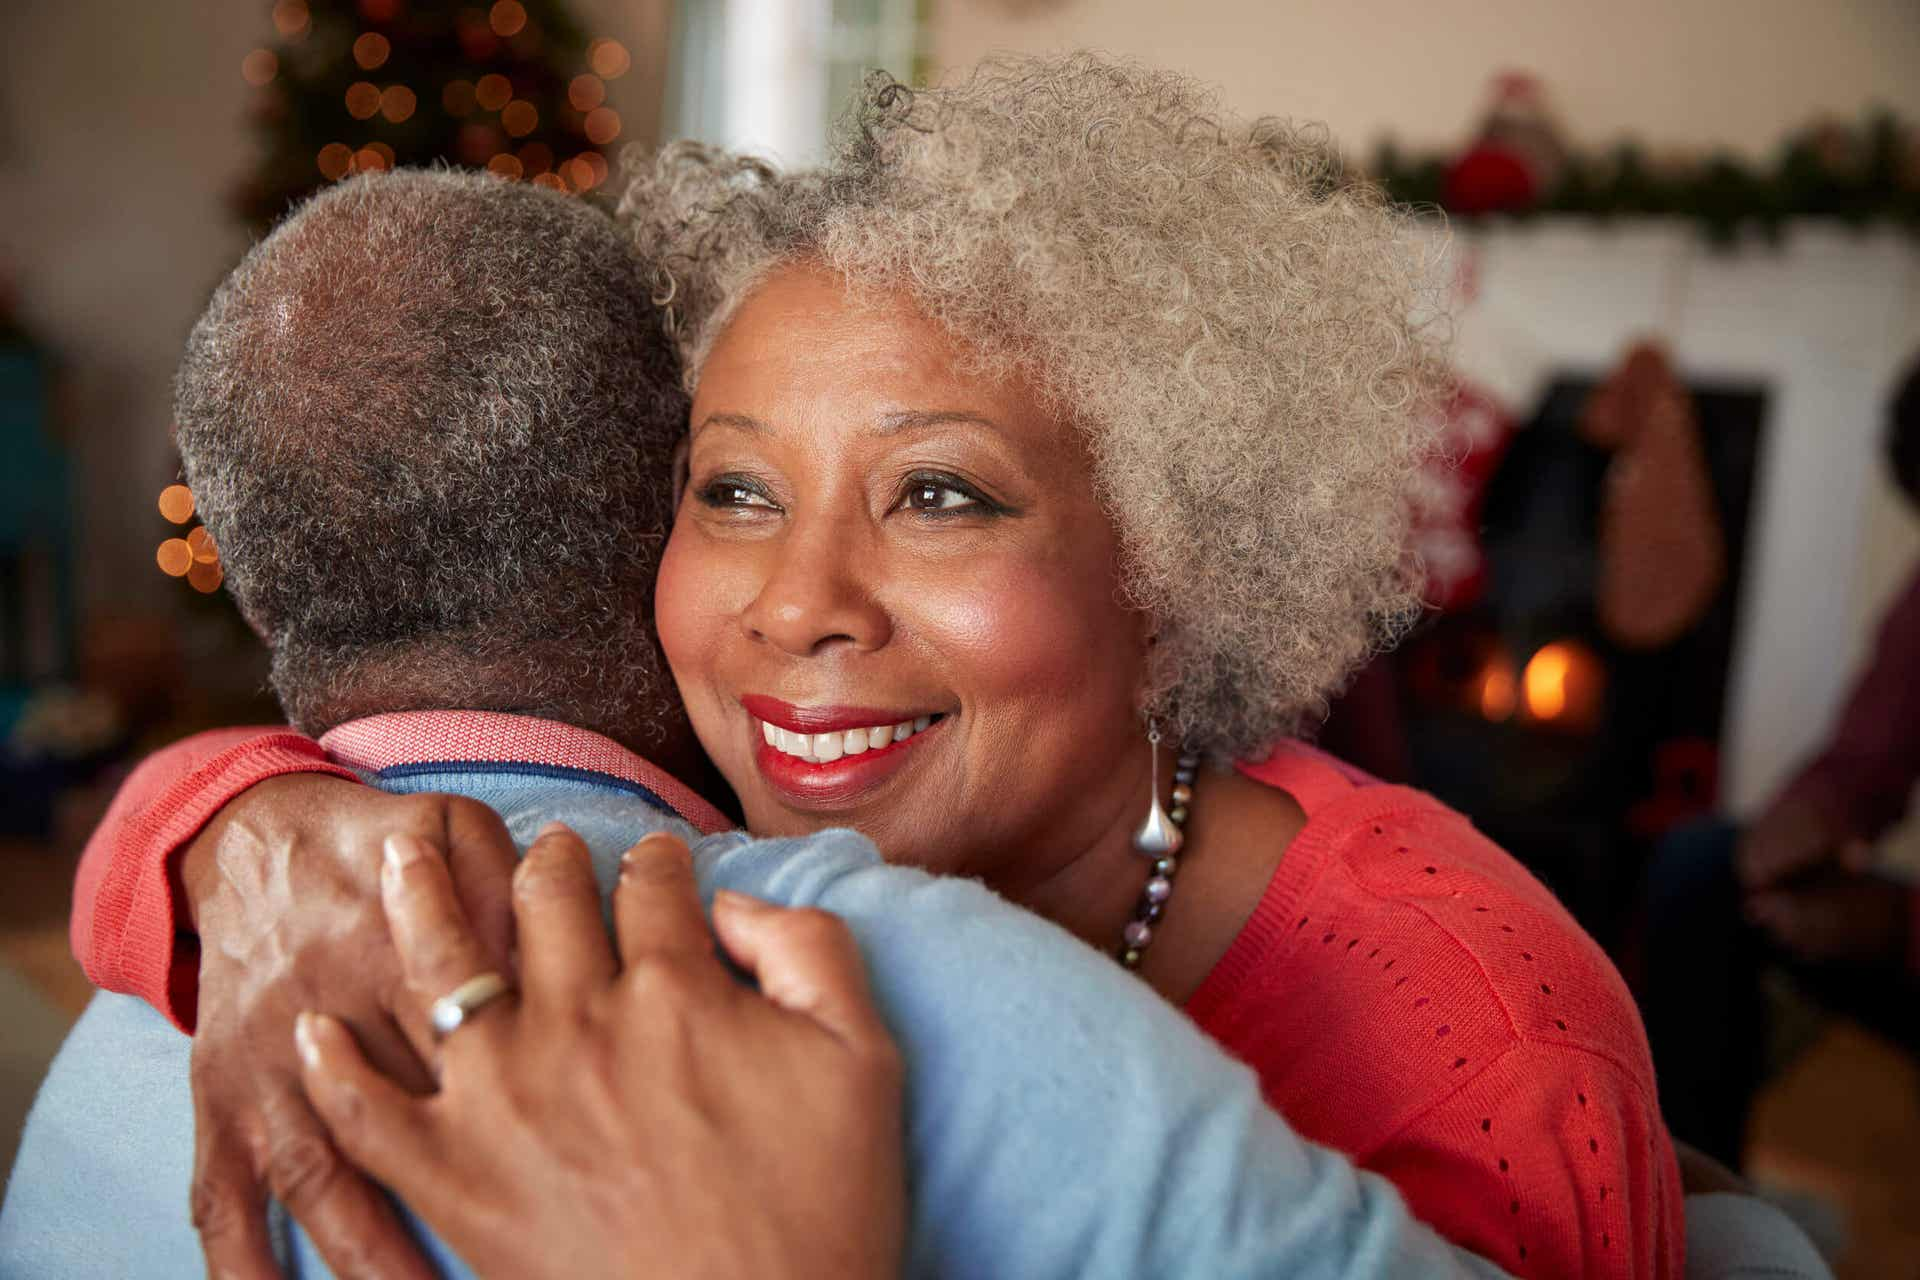 An older couple embracing.